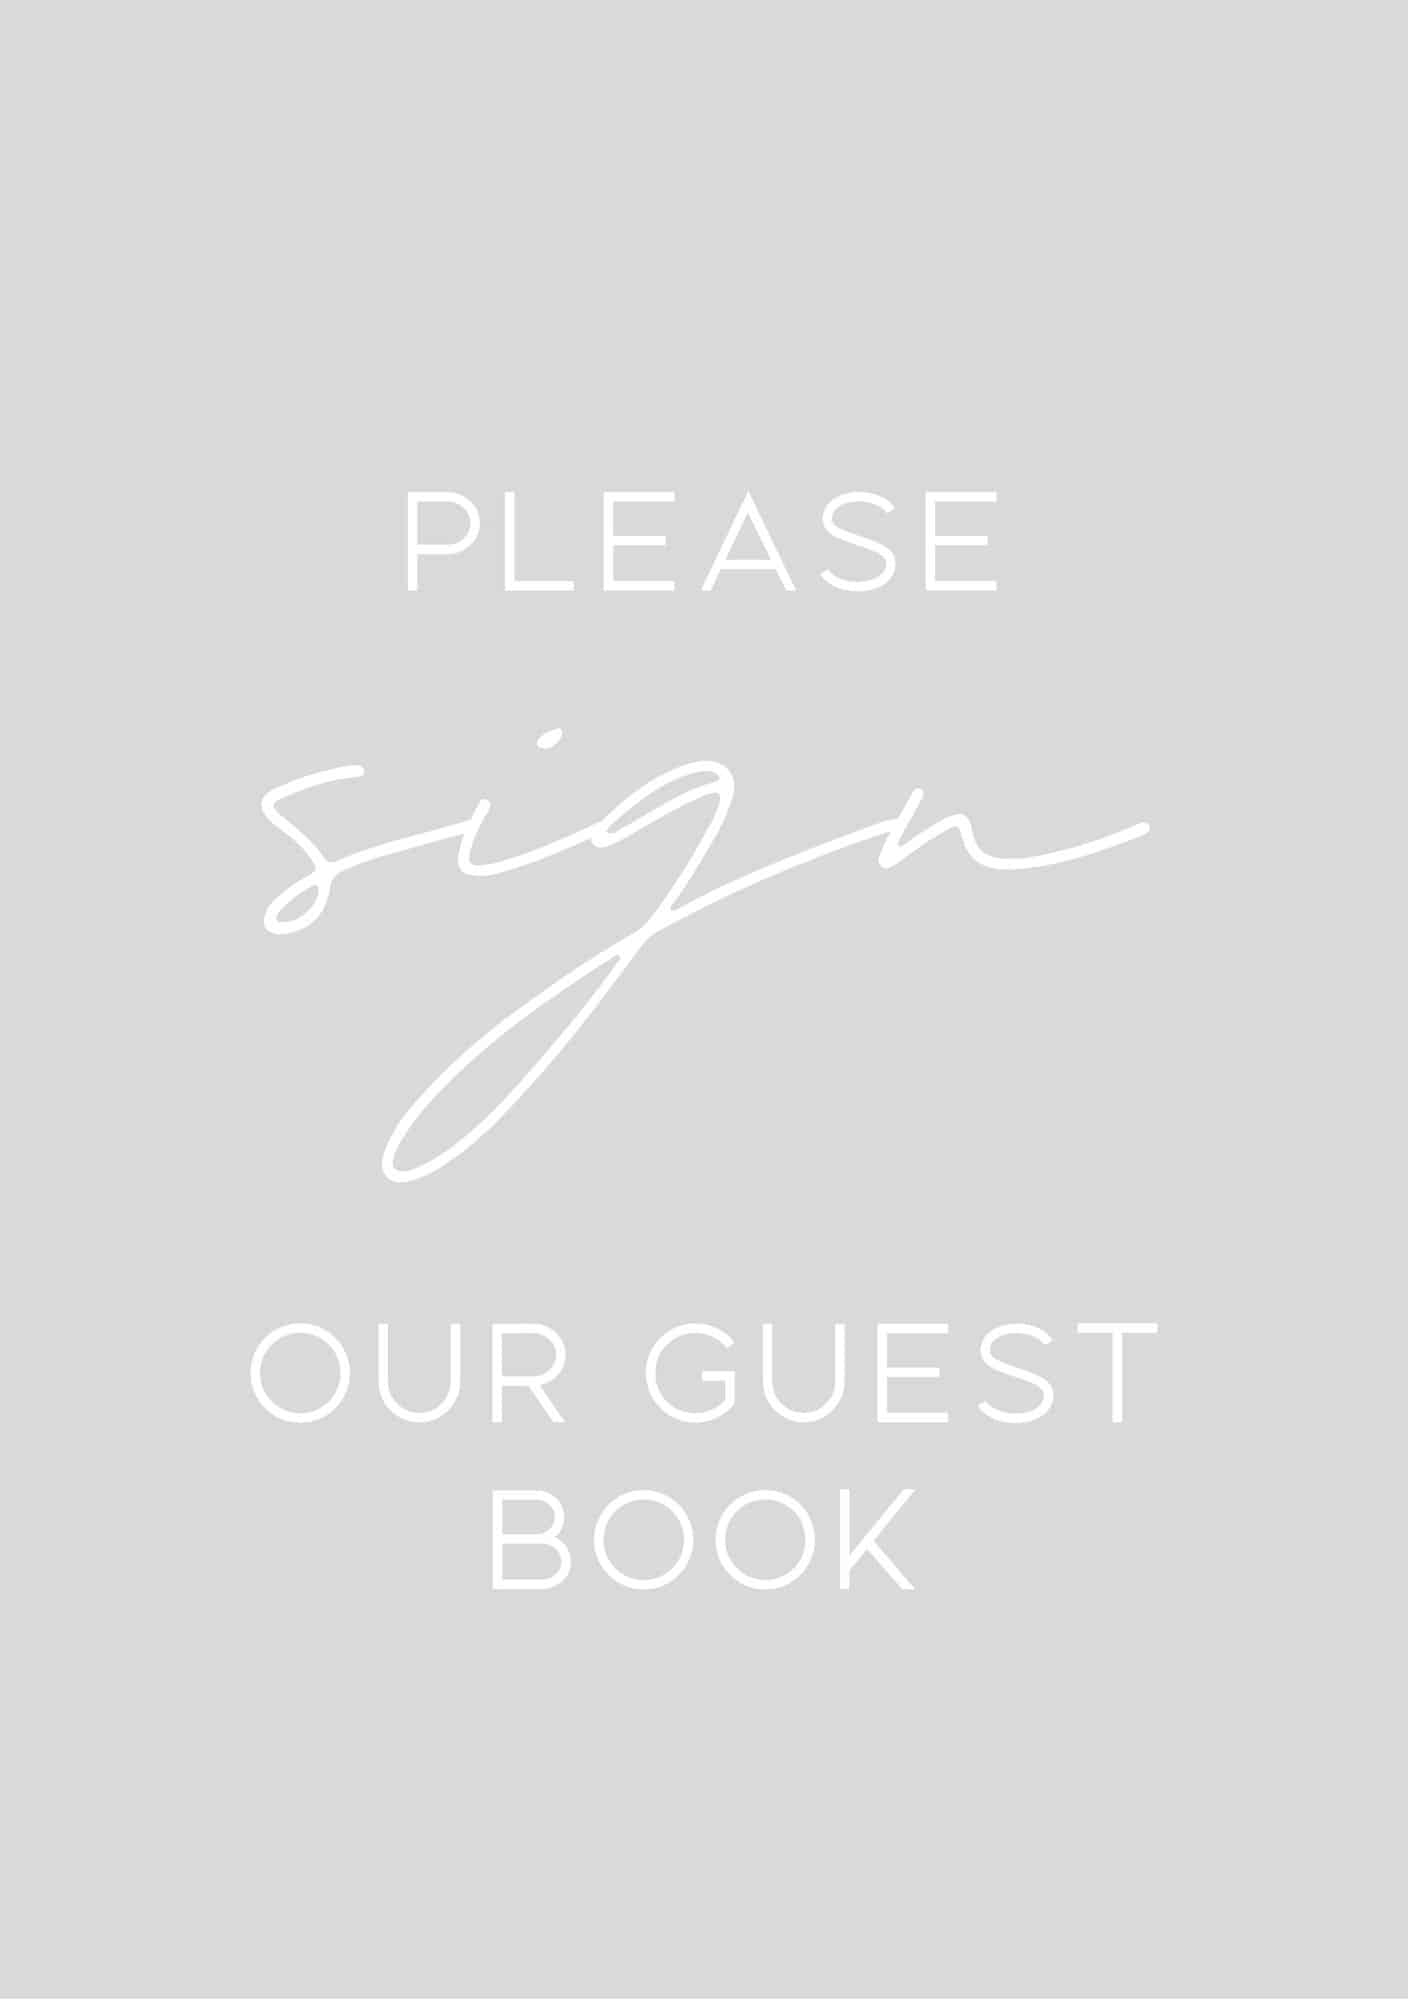 Grey guest book sign